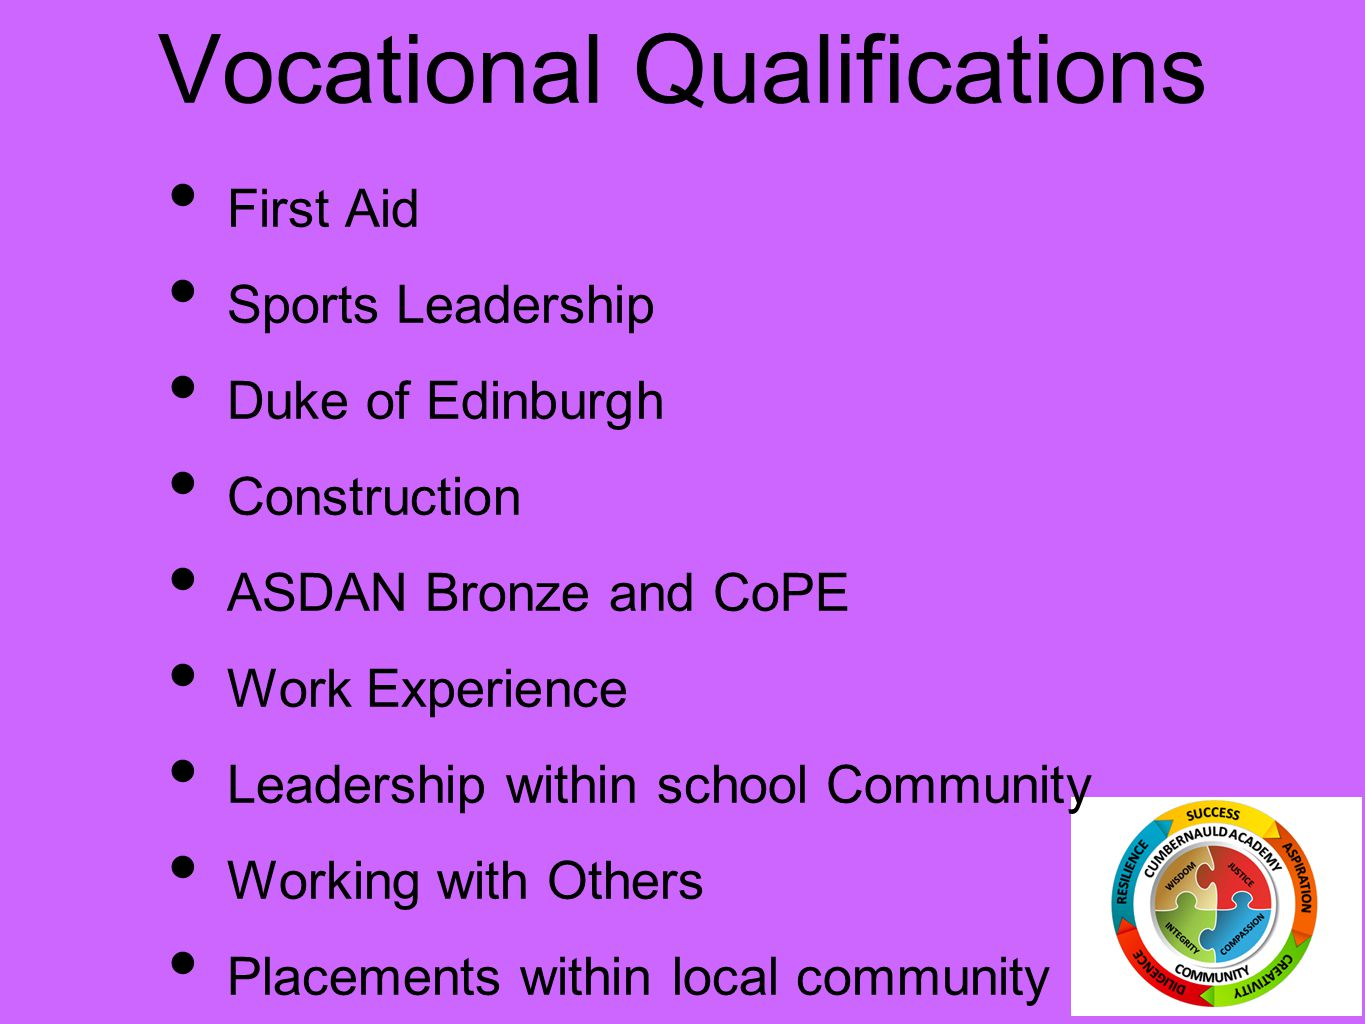 Vocational Qualifications First Aid Sports Leadership Duke of Edinburgh Construction ASDAN Bronze and CoPE Work Experience Leadership within school Community Working with Others Placements within local community